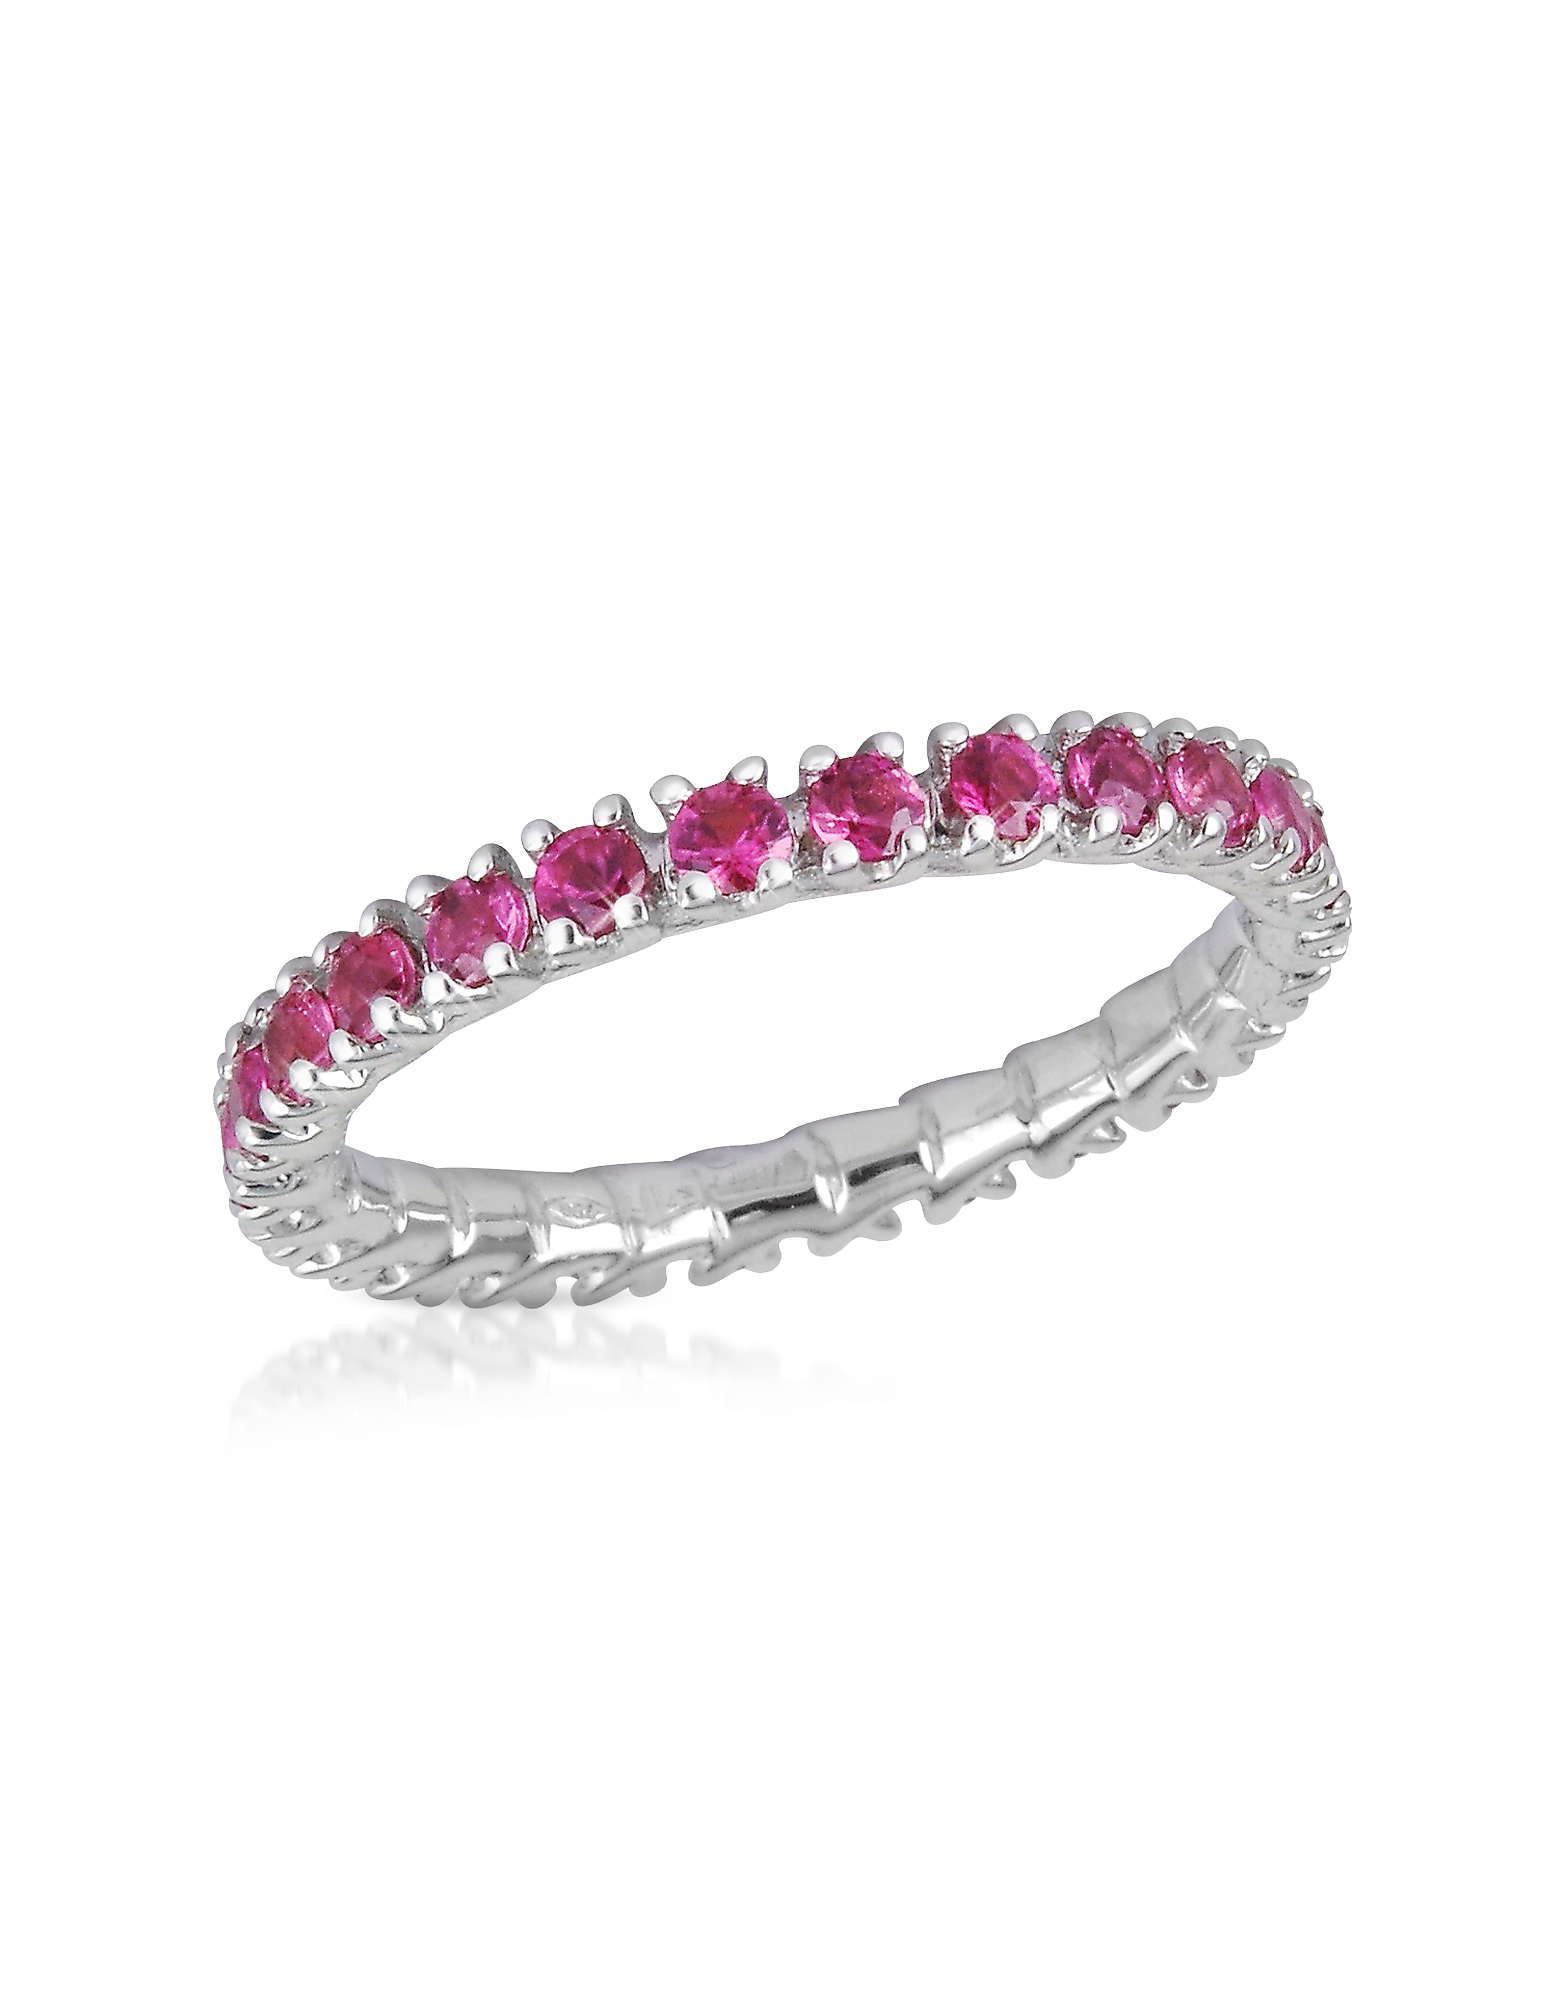 Forzieri Rings, Pink Sapphires 18K Gold Eternity Band